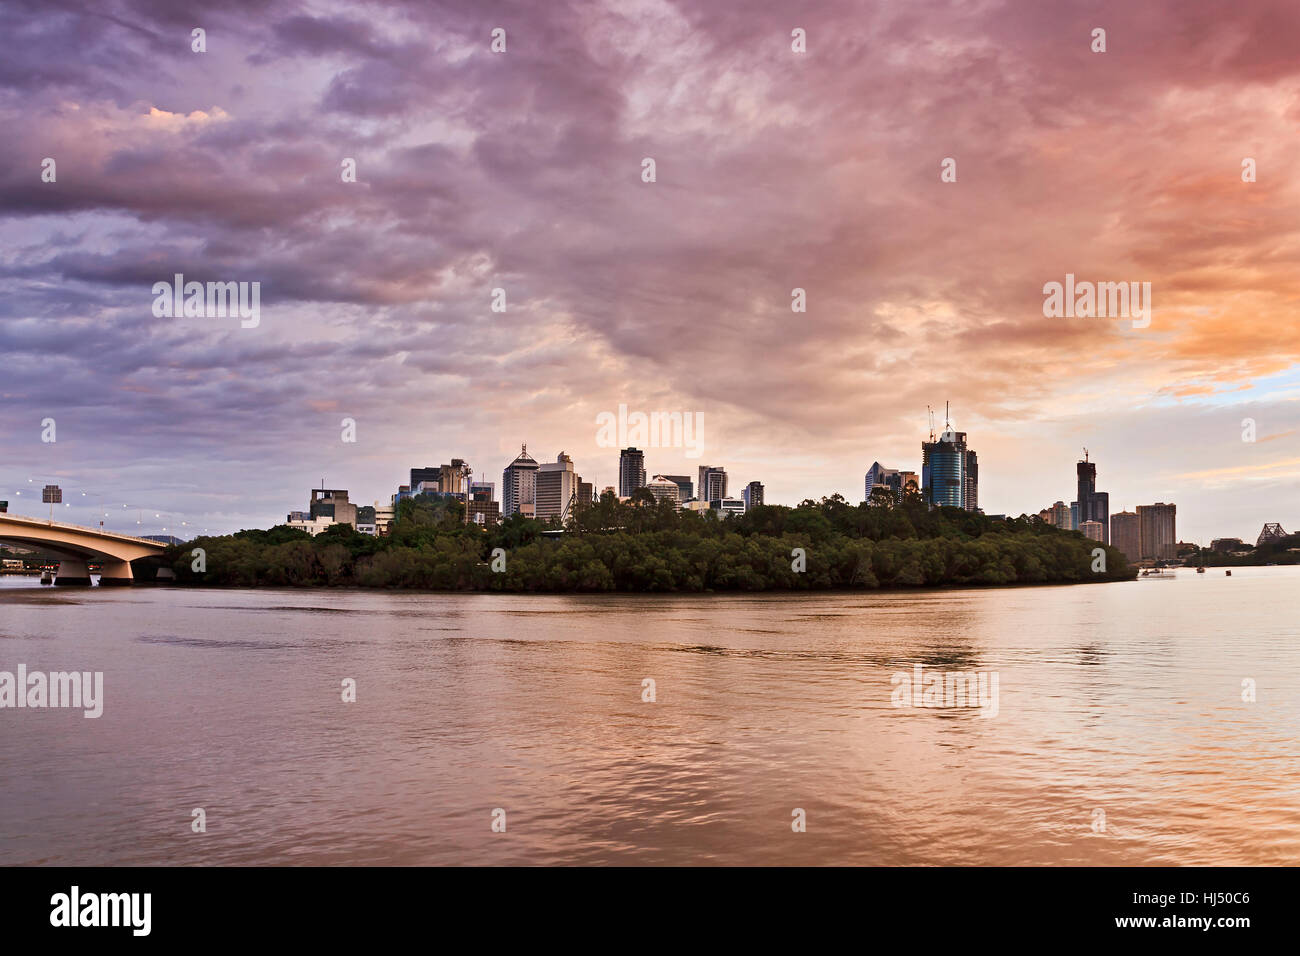 Brisbane city CBD view across Brisbane river over parkland and waterfront between famous Queensland's capital - Stock Image